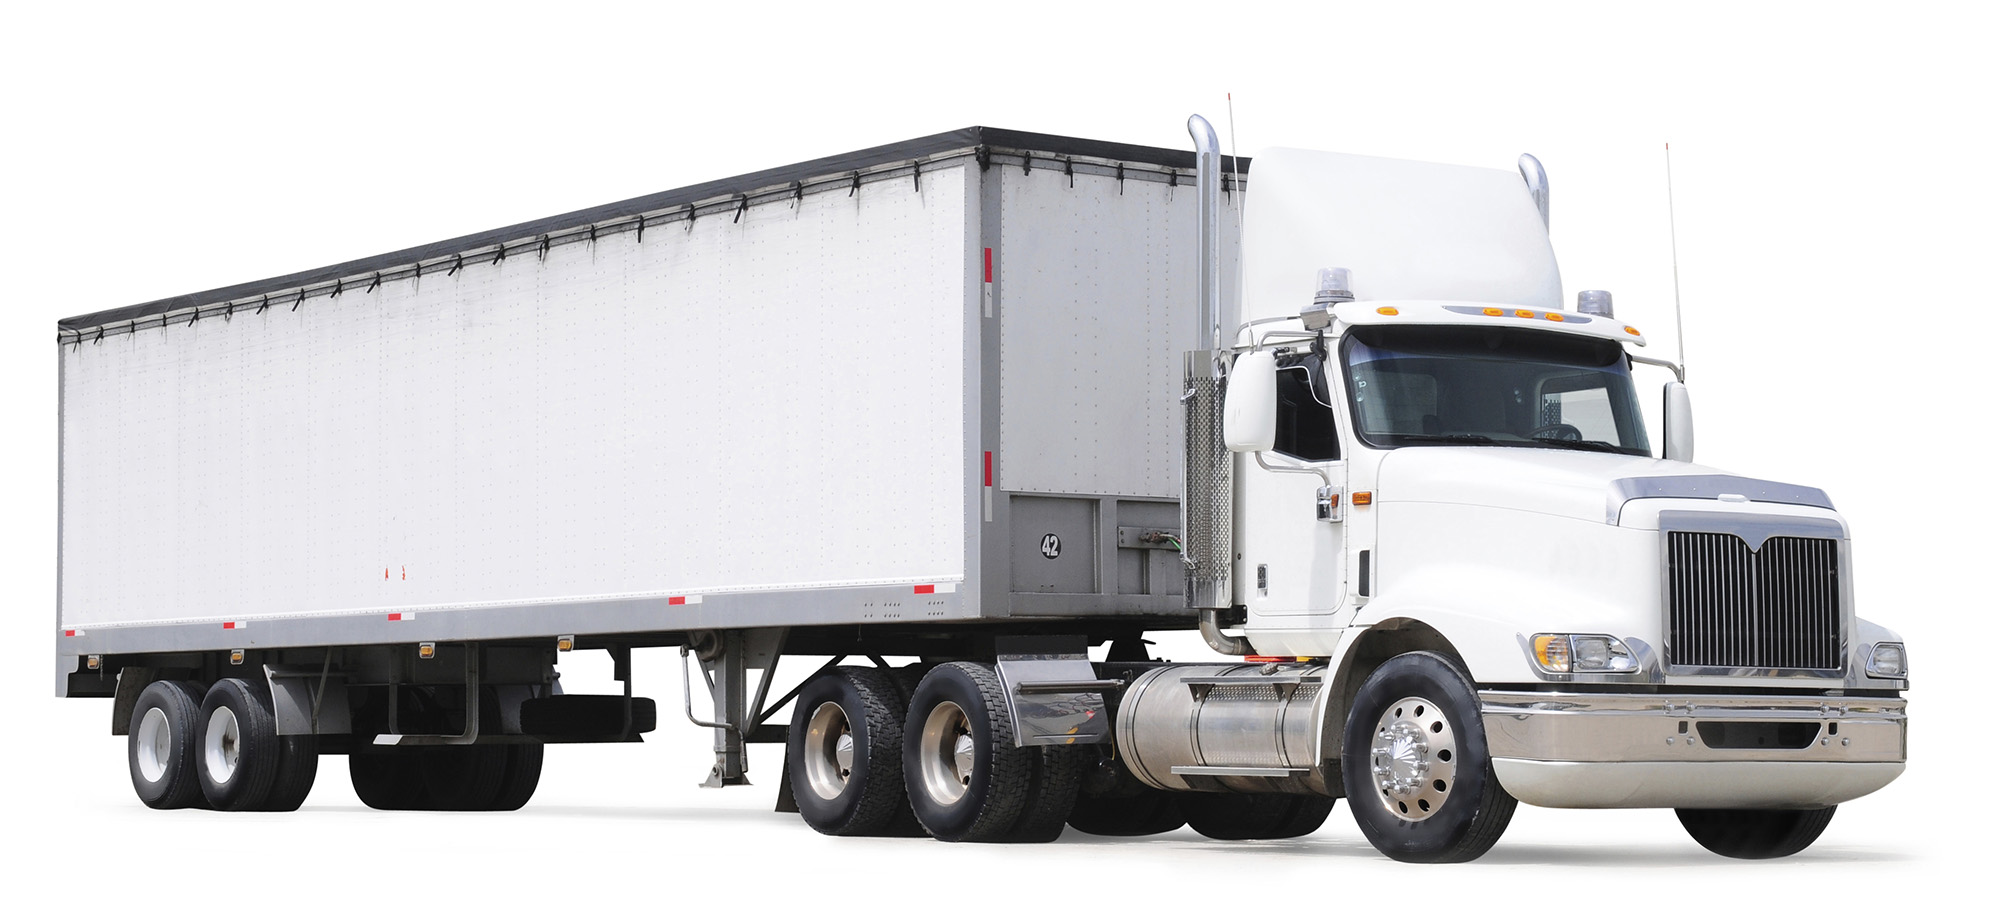 http://cafcp.org/sites/default/files/truck_us-white_0.jpg